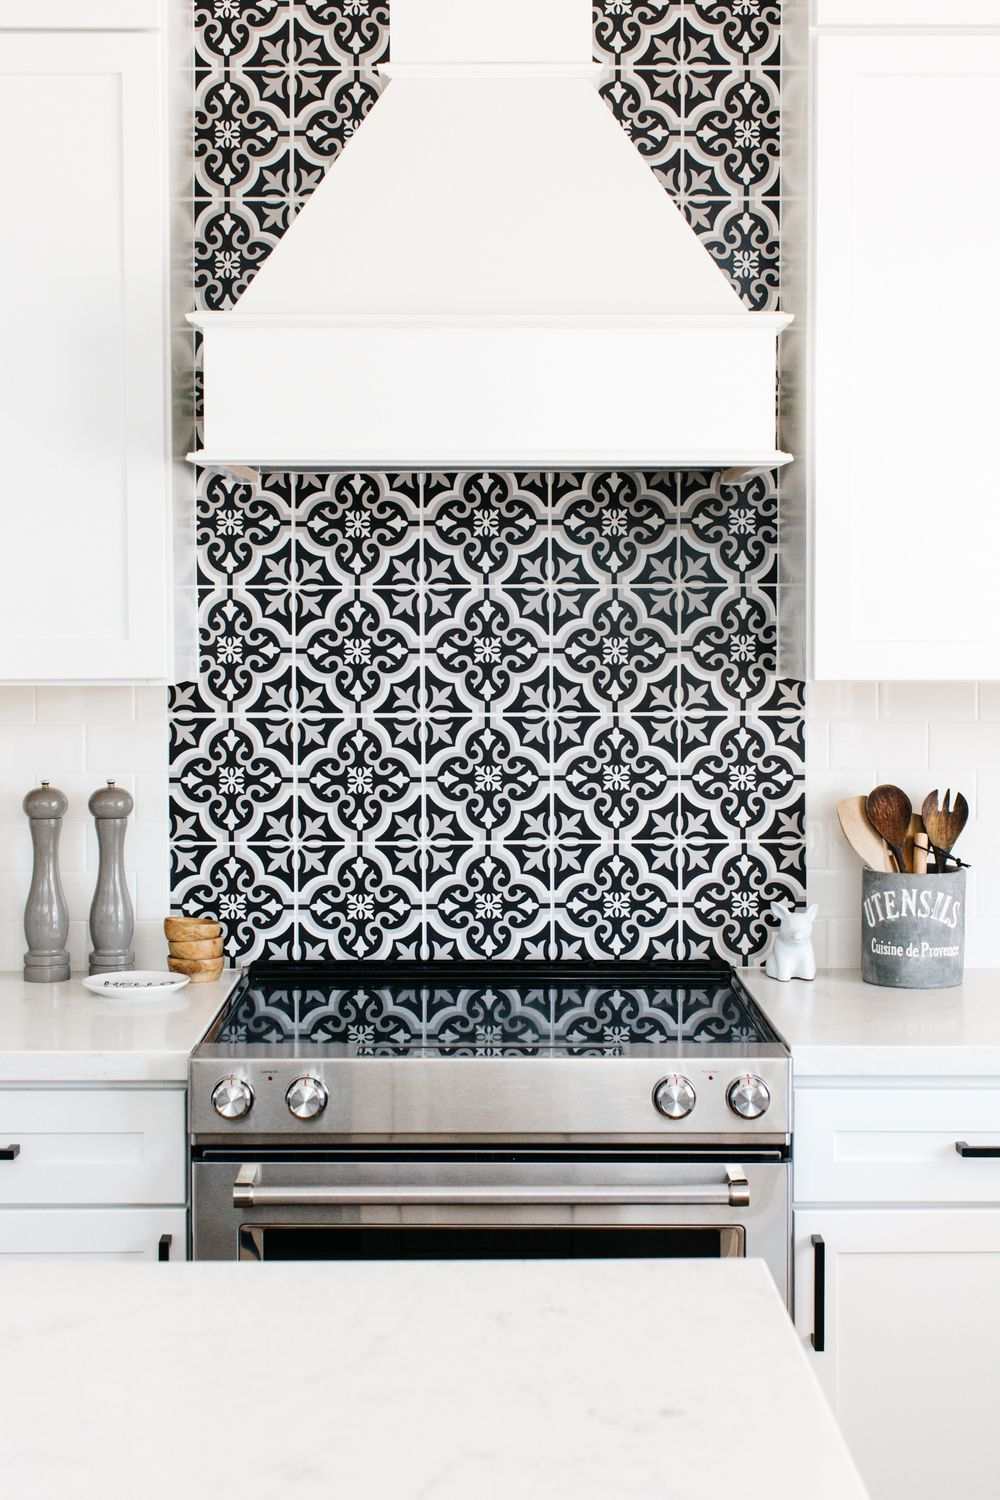 Black and white patterned tile backsplash kitchen update